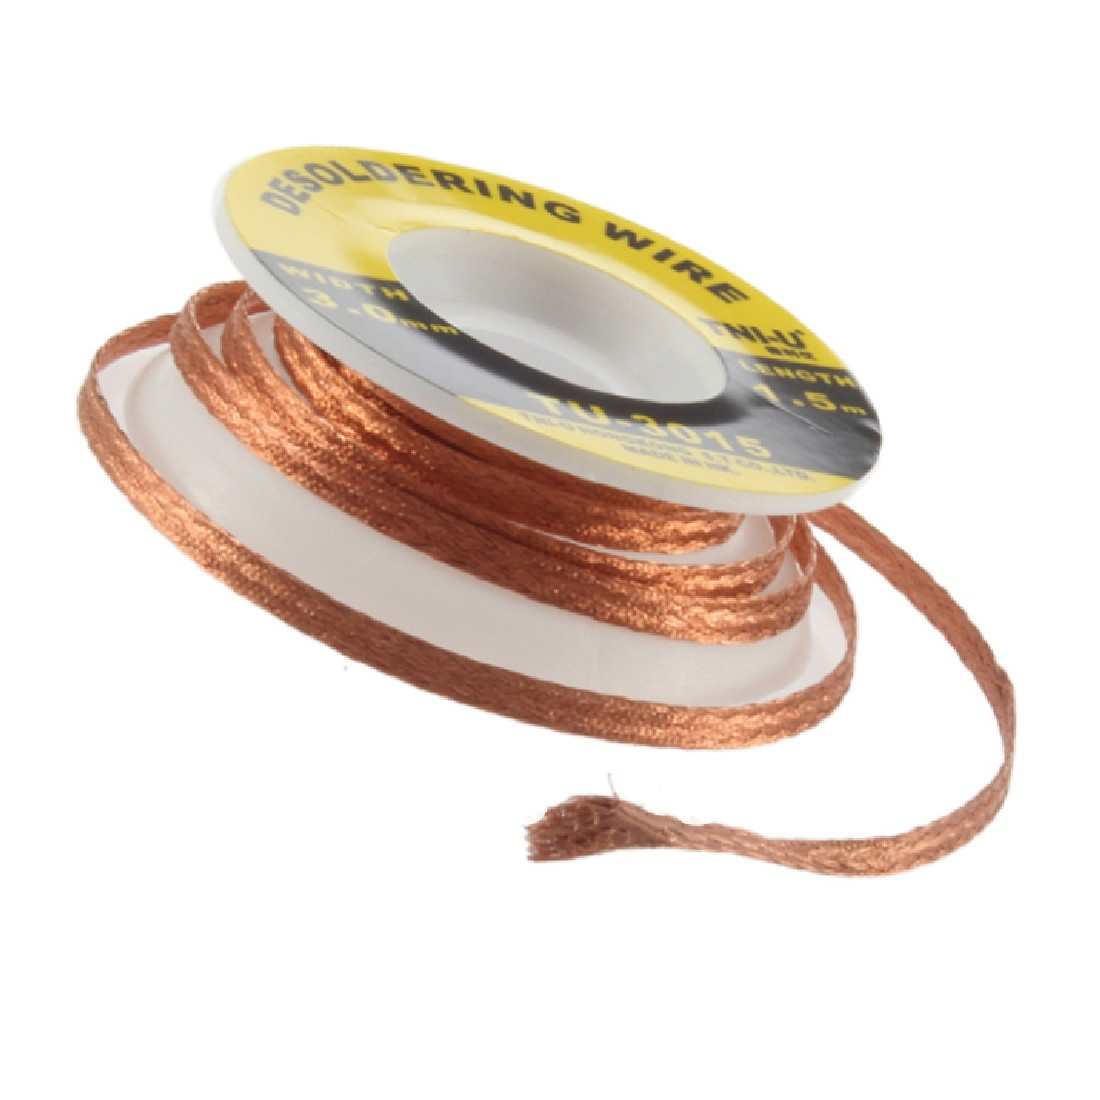 1pcs New 1 5M 3 0mm Thickness Welding Wires Practical Desoldering Braid Solder Remover Wick High